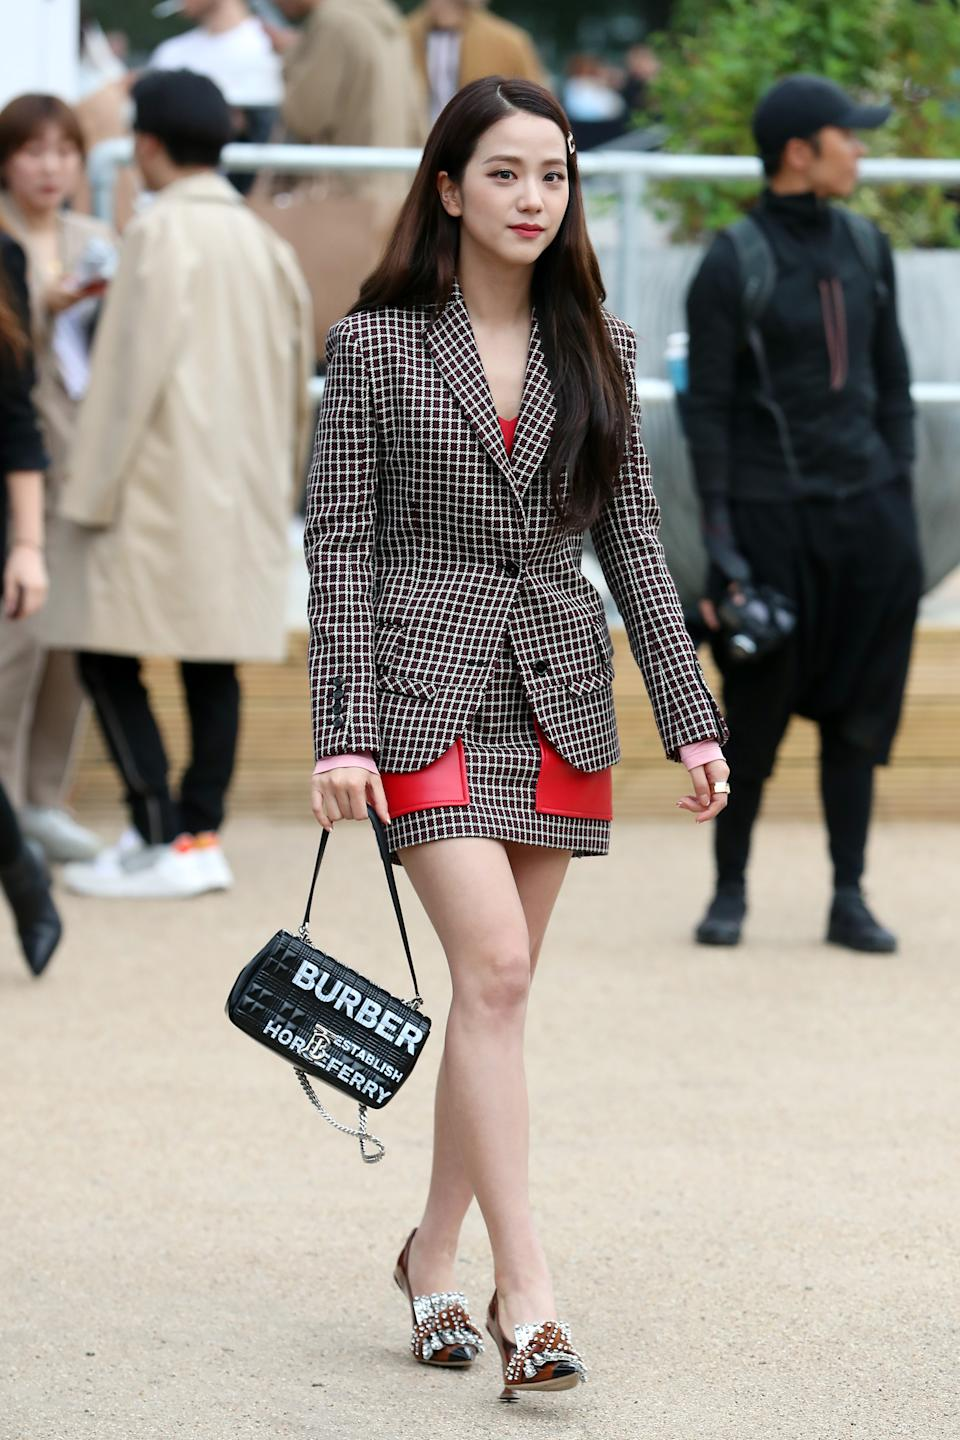 Jisoo arriving at Burberry's SS20 show. [Photo: Getty Images]